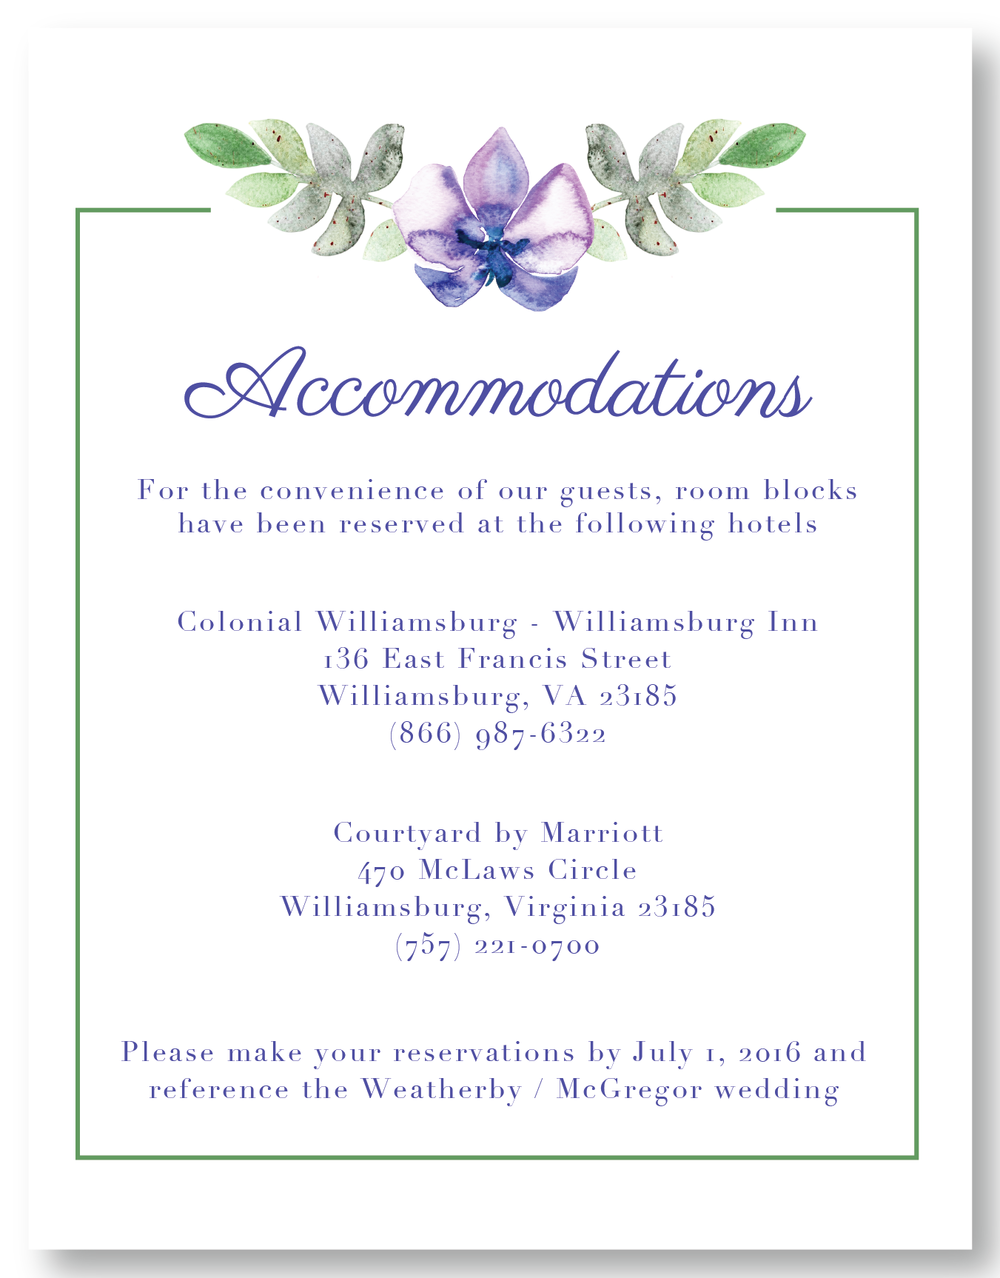 The Williamsburg 2 - Accommodation Card